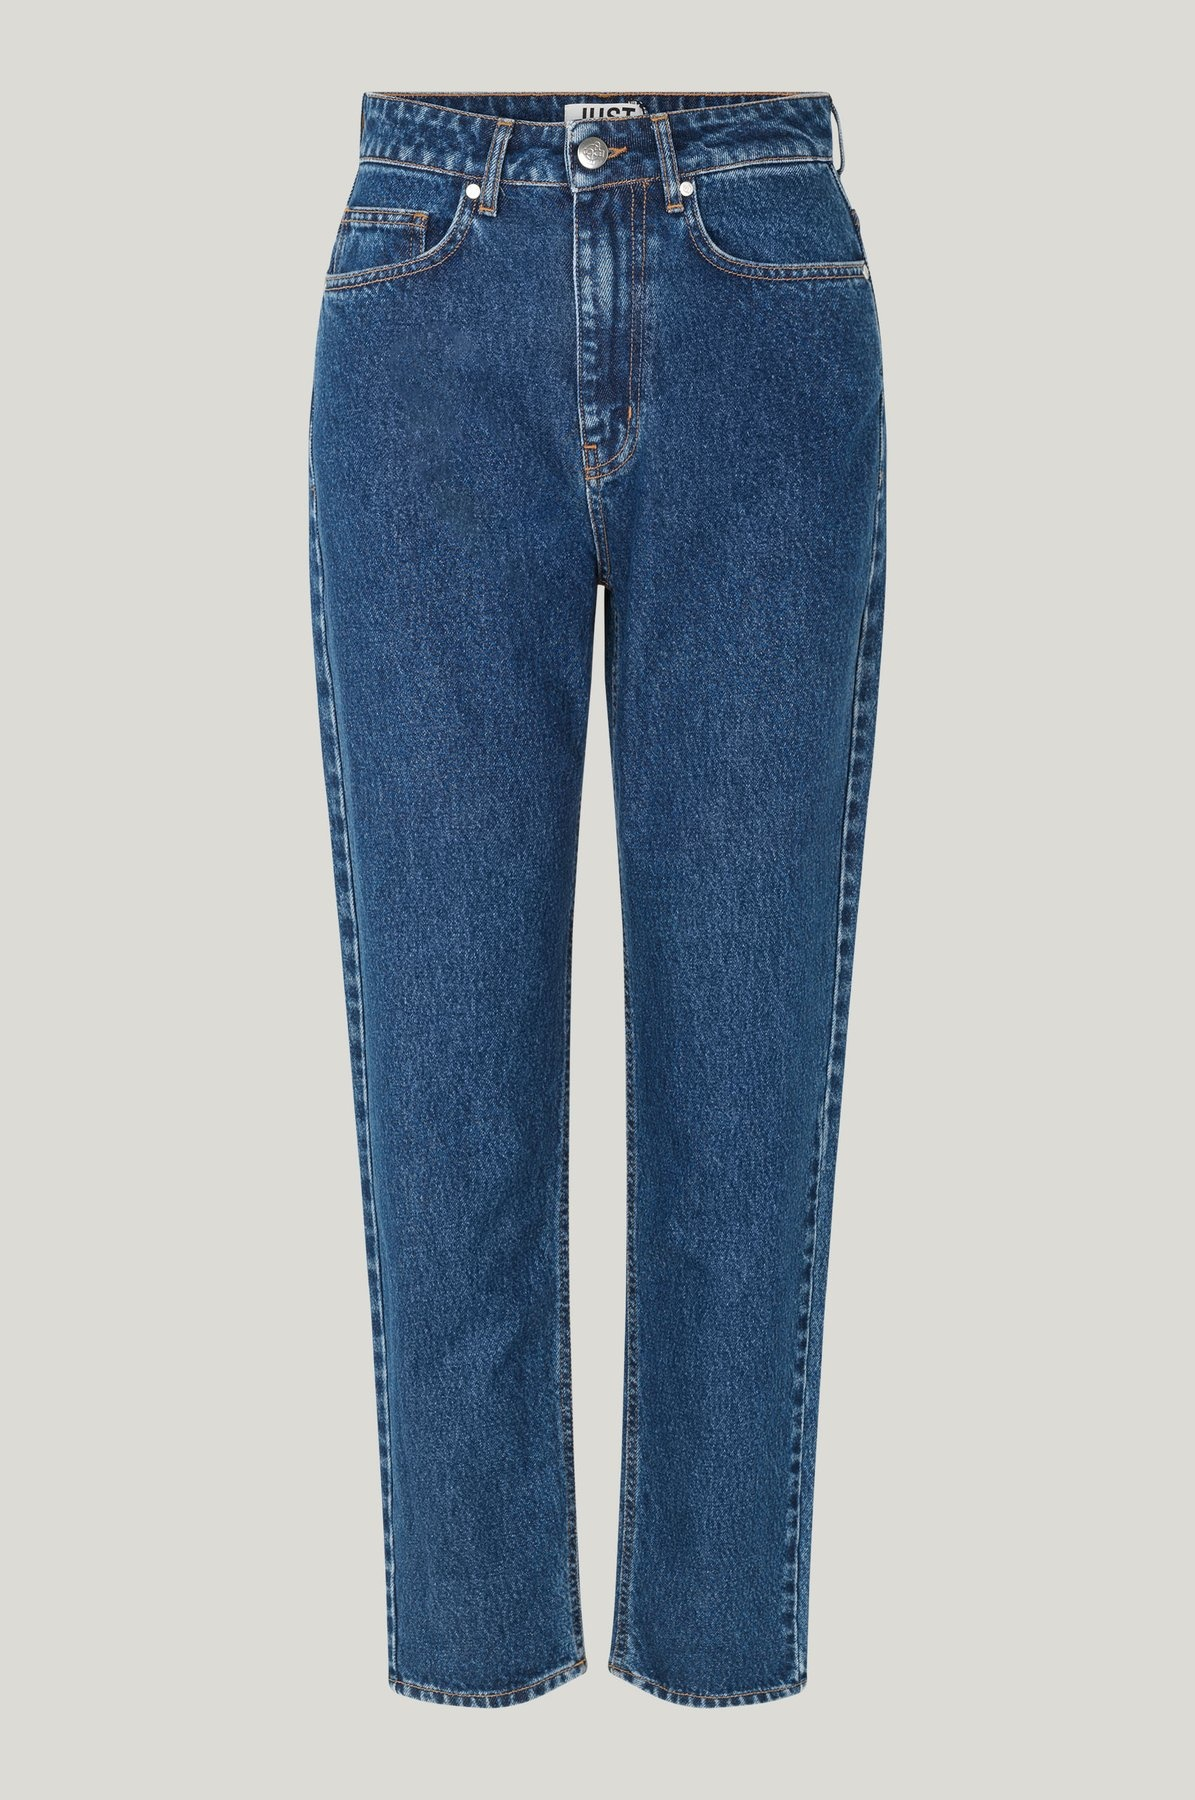 JUST FEMALE jean stormy 0102-1